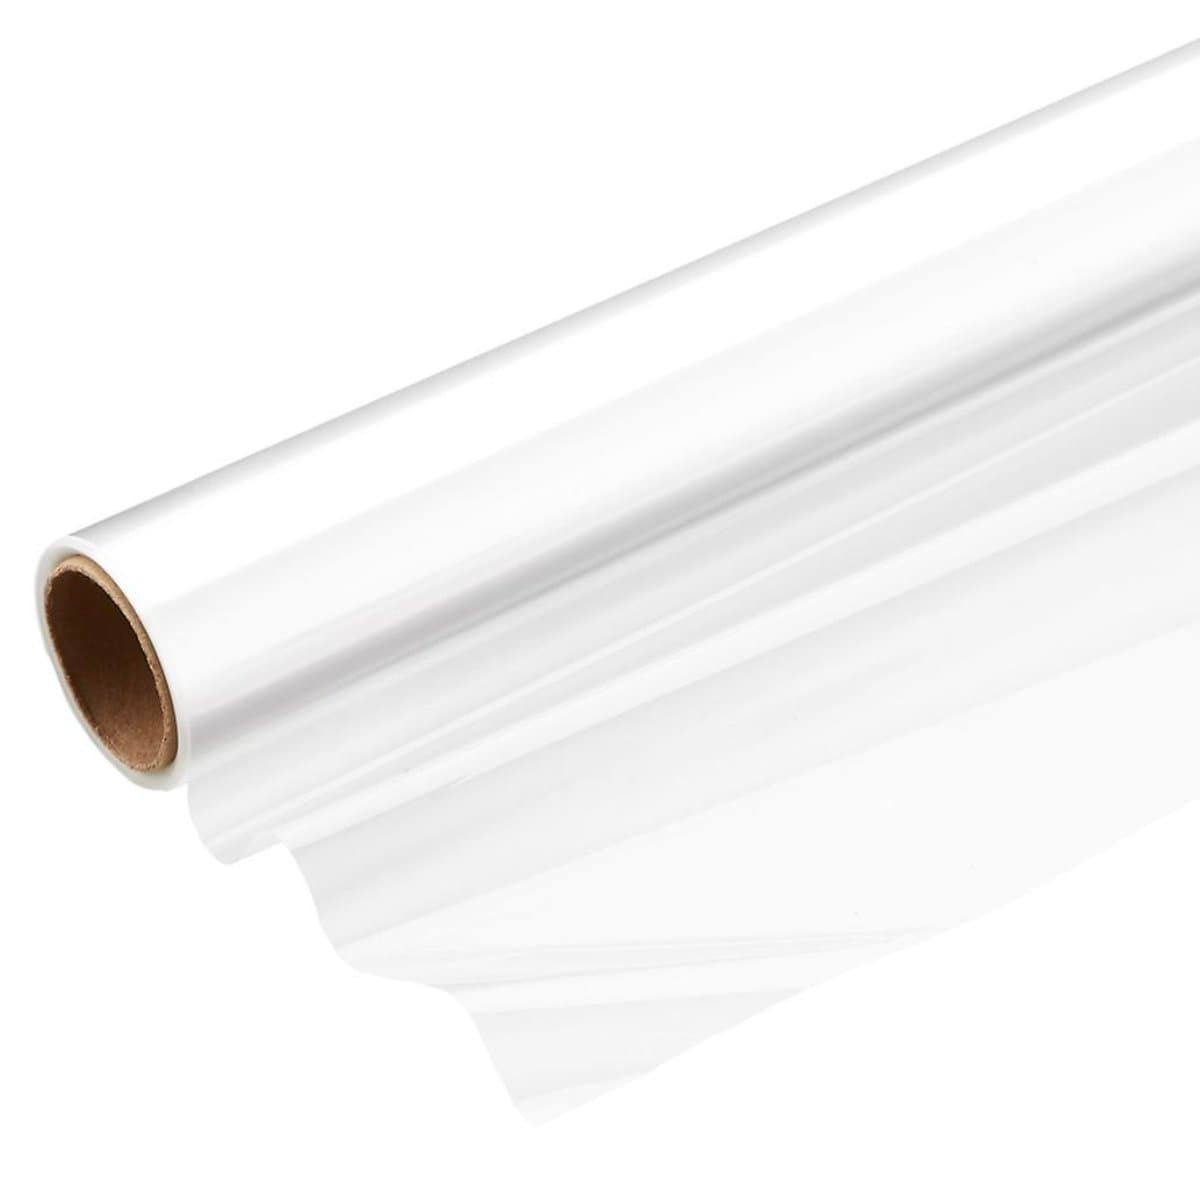 Paul Clear Cellophane Wrapping Paper, 70 x 500 cm, Transparent